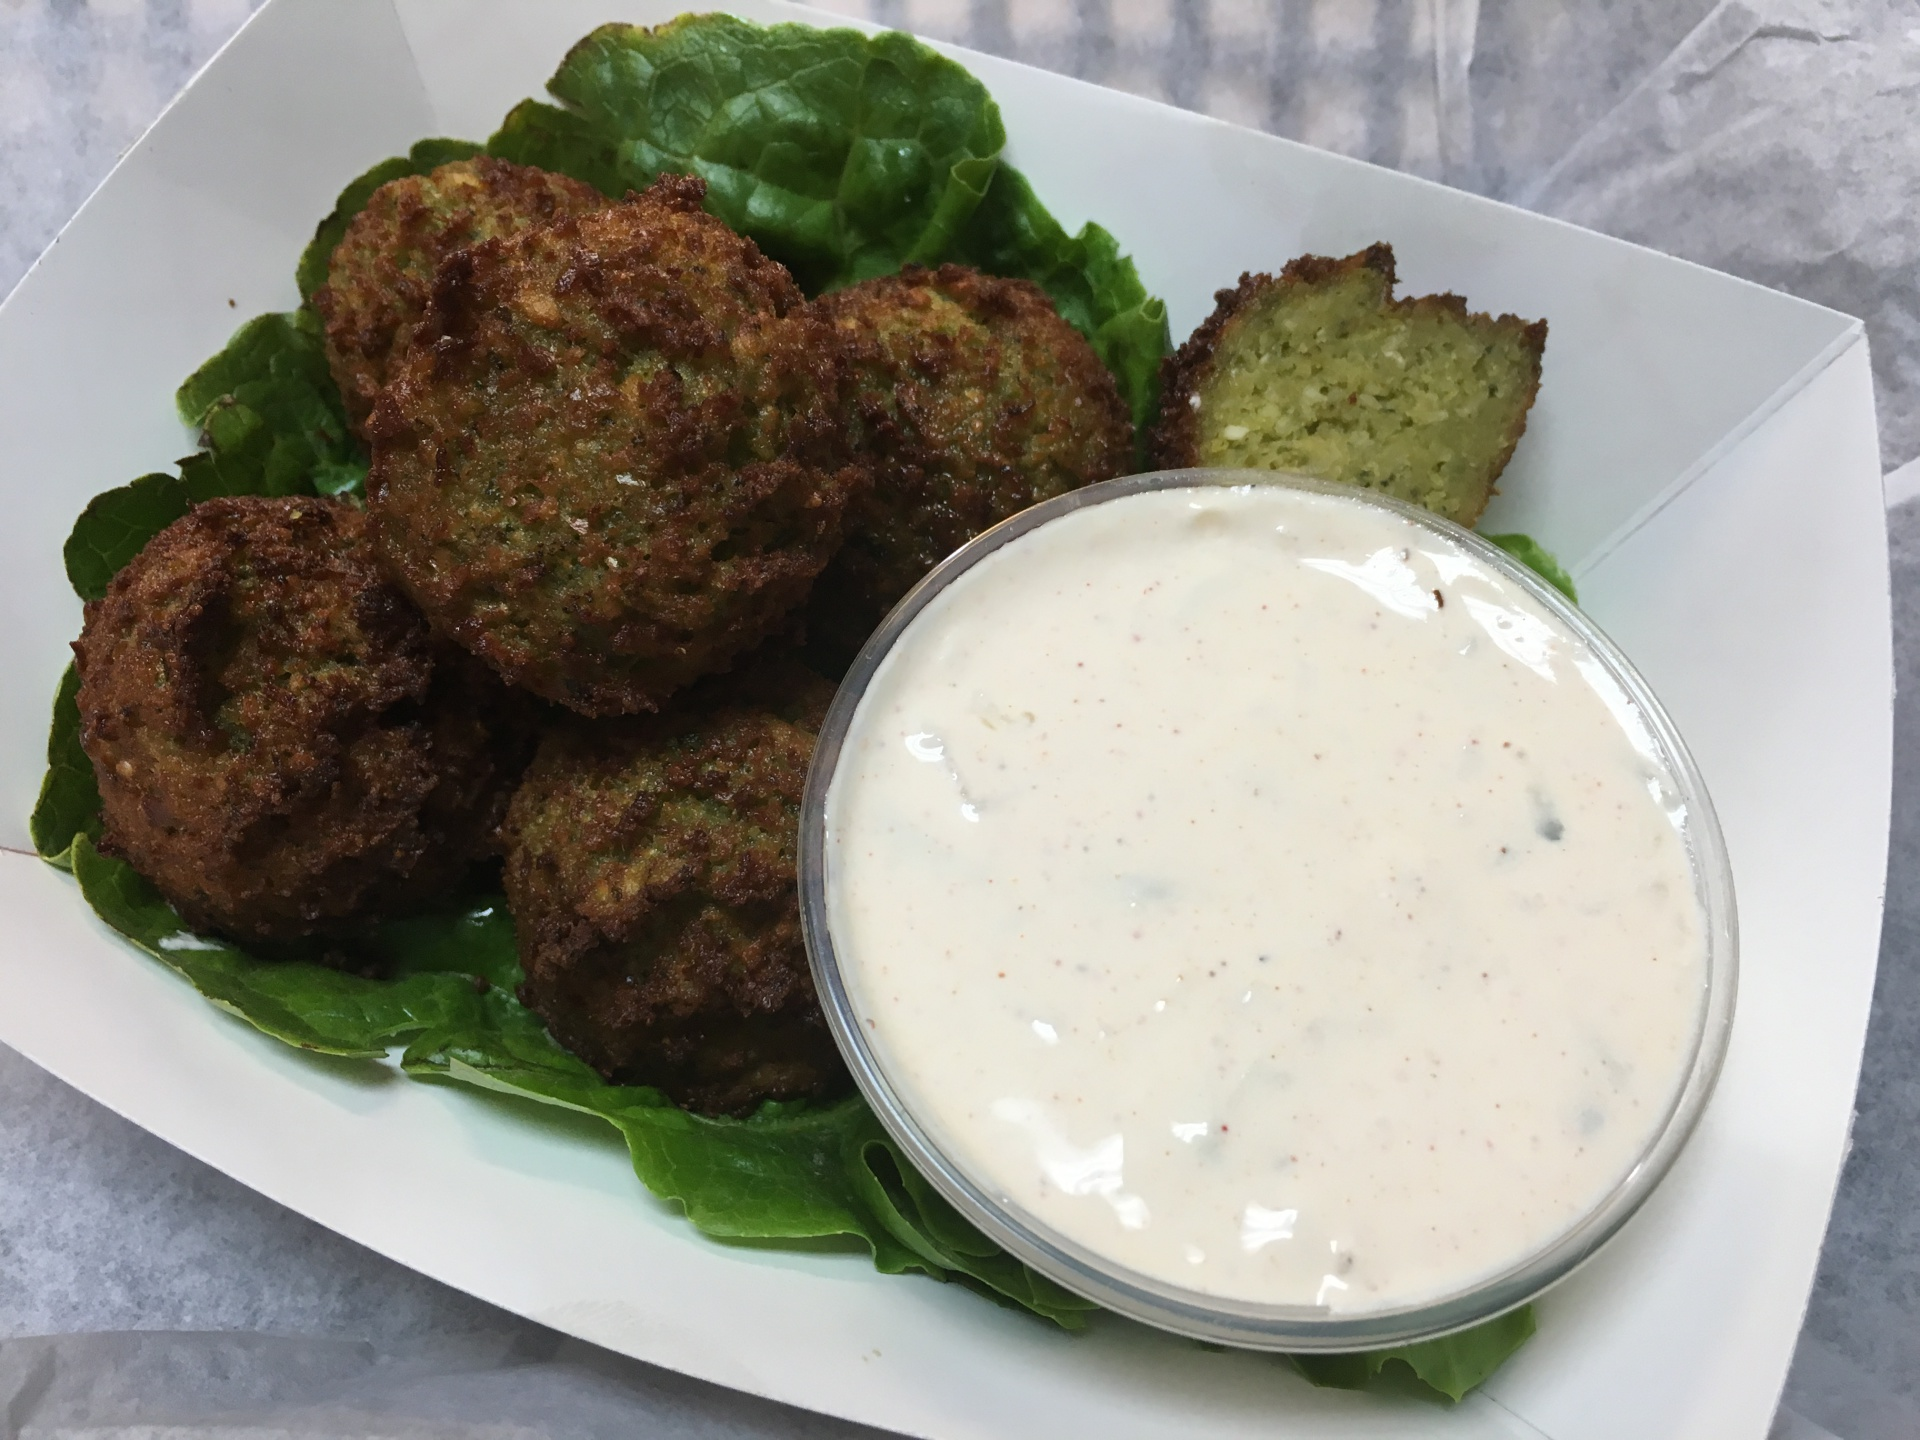 Falafel Appetizer with Tzatziki sauce